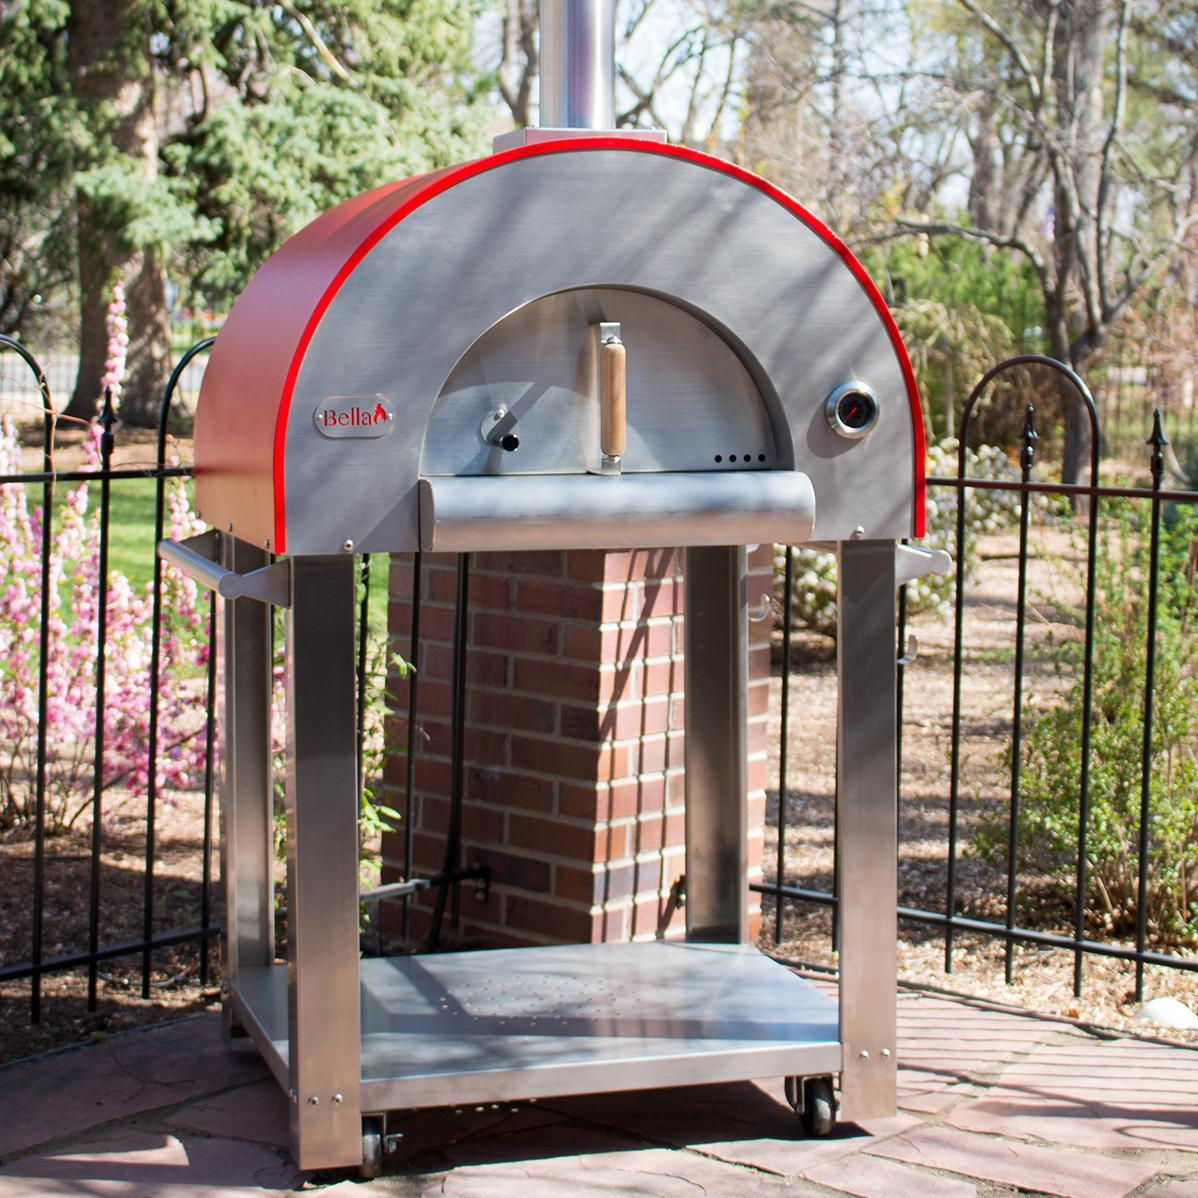 "Bella Outdoor Living Bella Medio 28"" Outdoor Wood-fired Pizza Oven On Cart - Red - Bems28r"